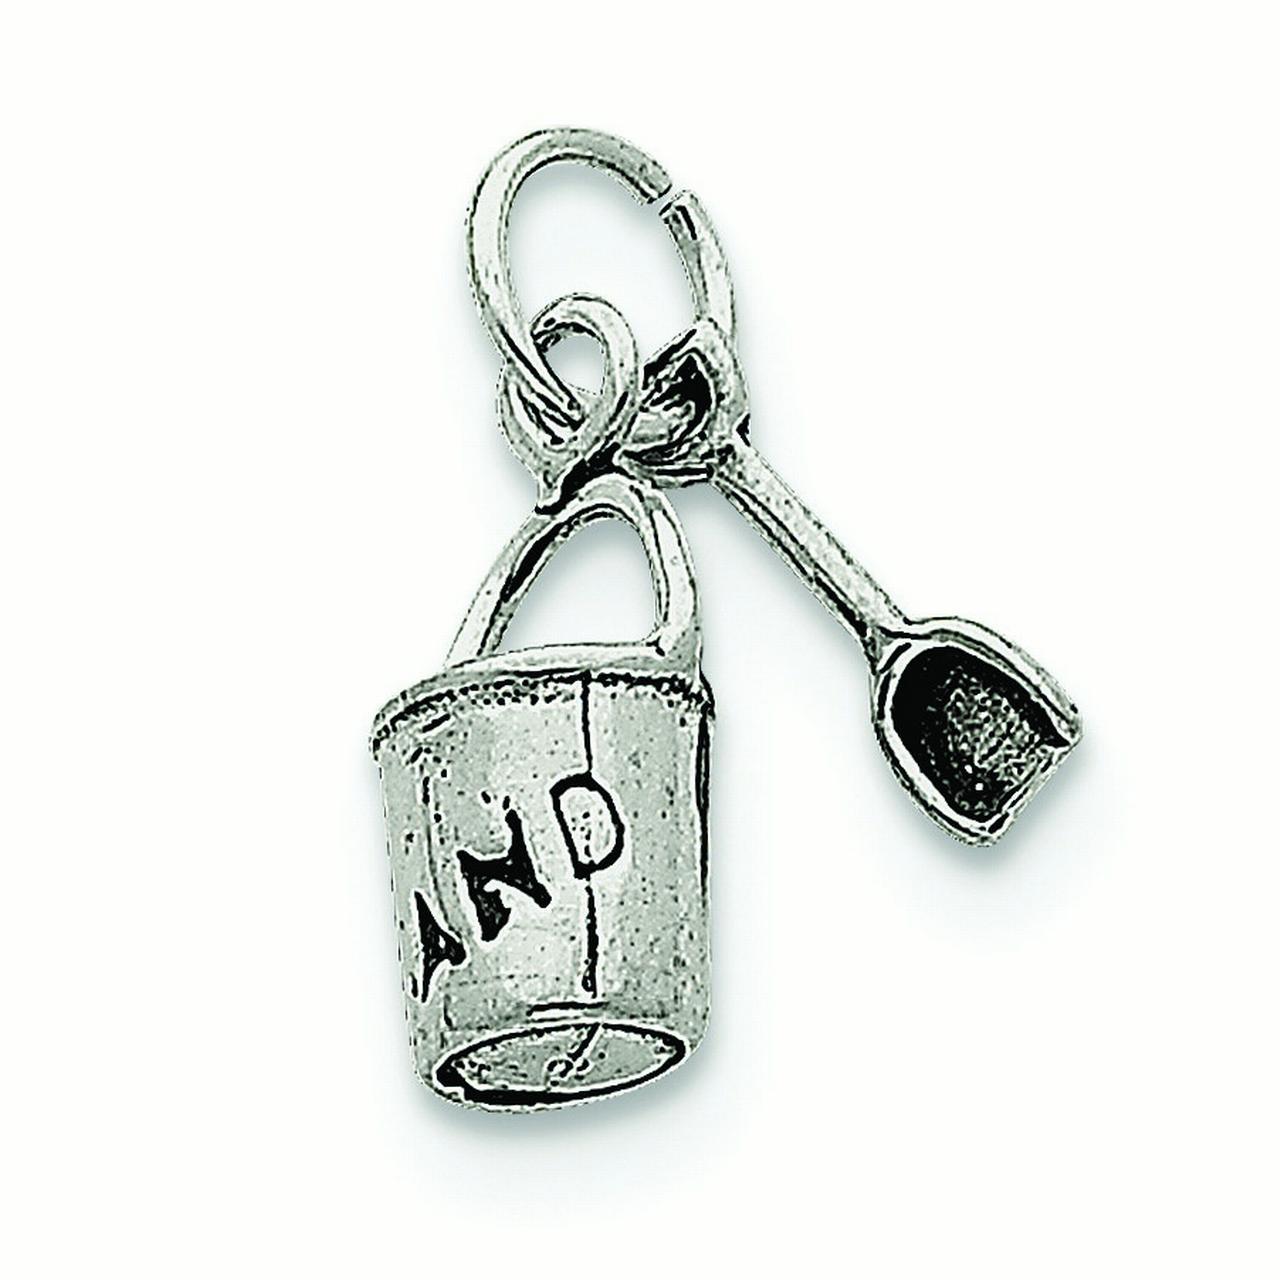 Sterling Silver Polished Antique finish Antiqued Sand Bucket and Shovel Charm - 1.8 Grams